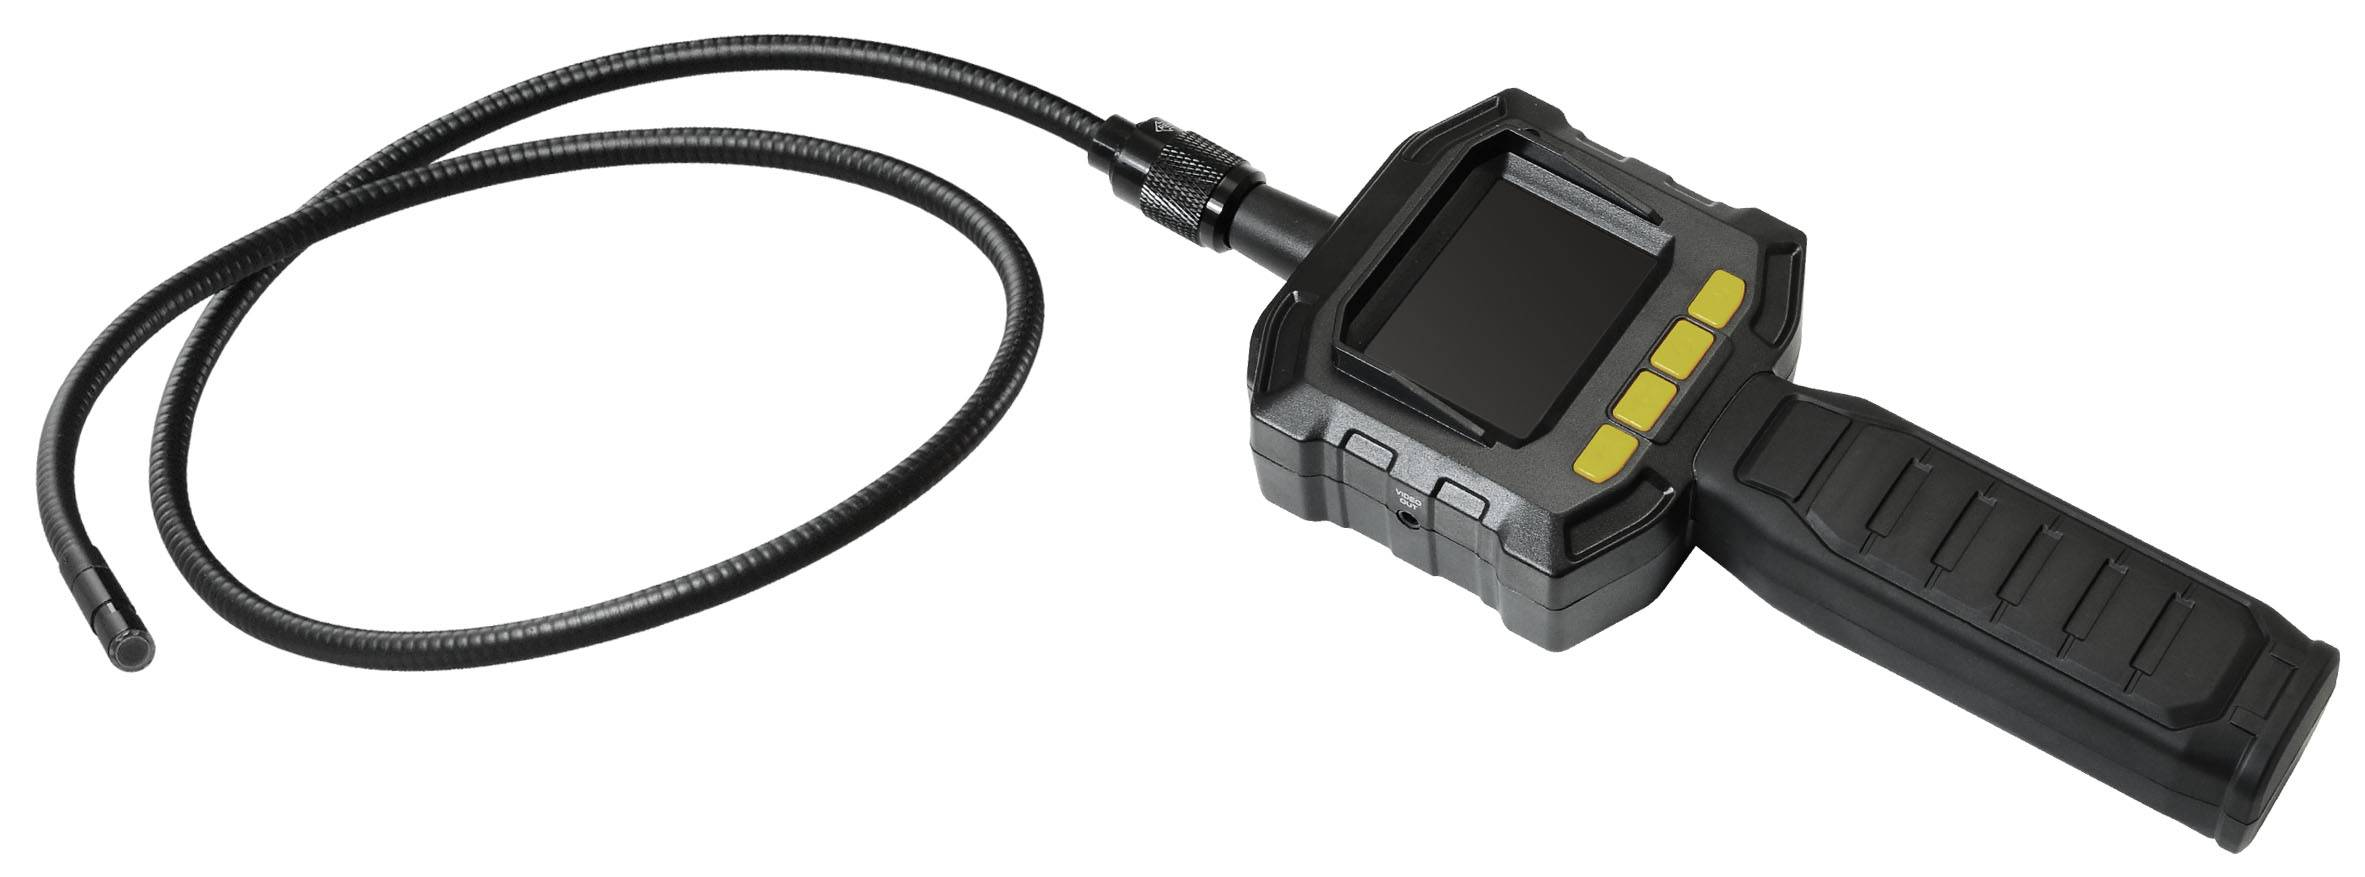 Handheld Snake Inspection Camera for Car, Tank, Underwater Checking